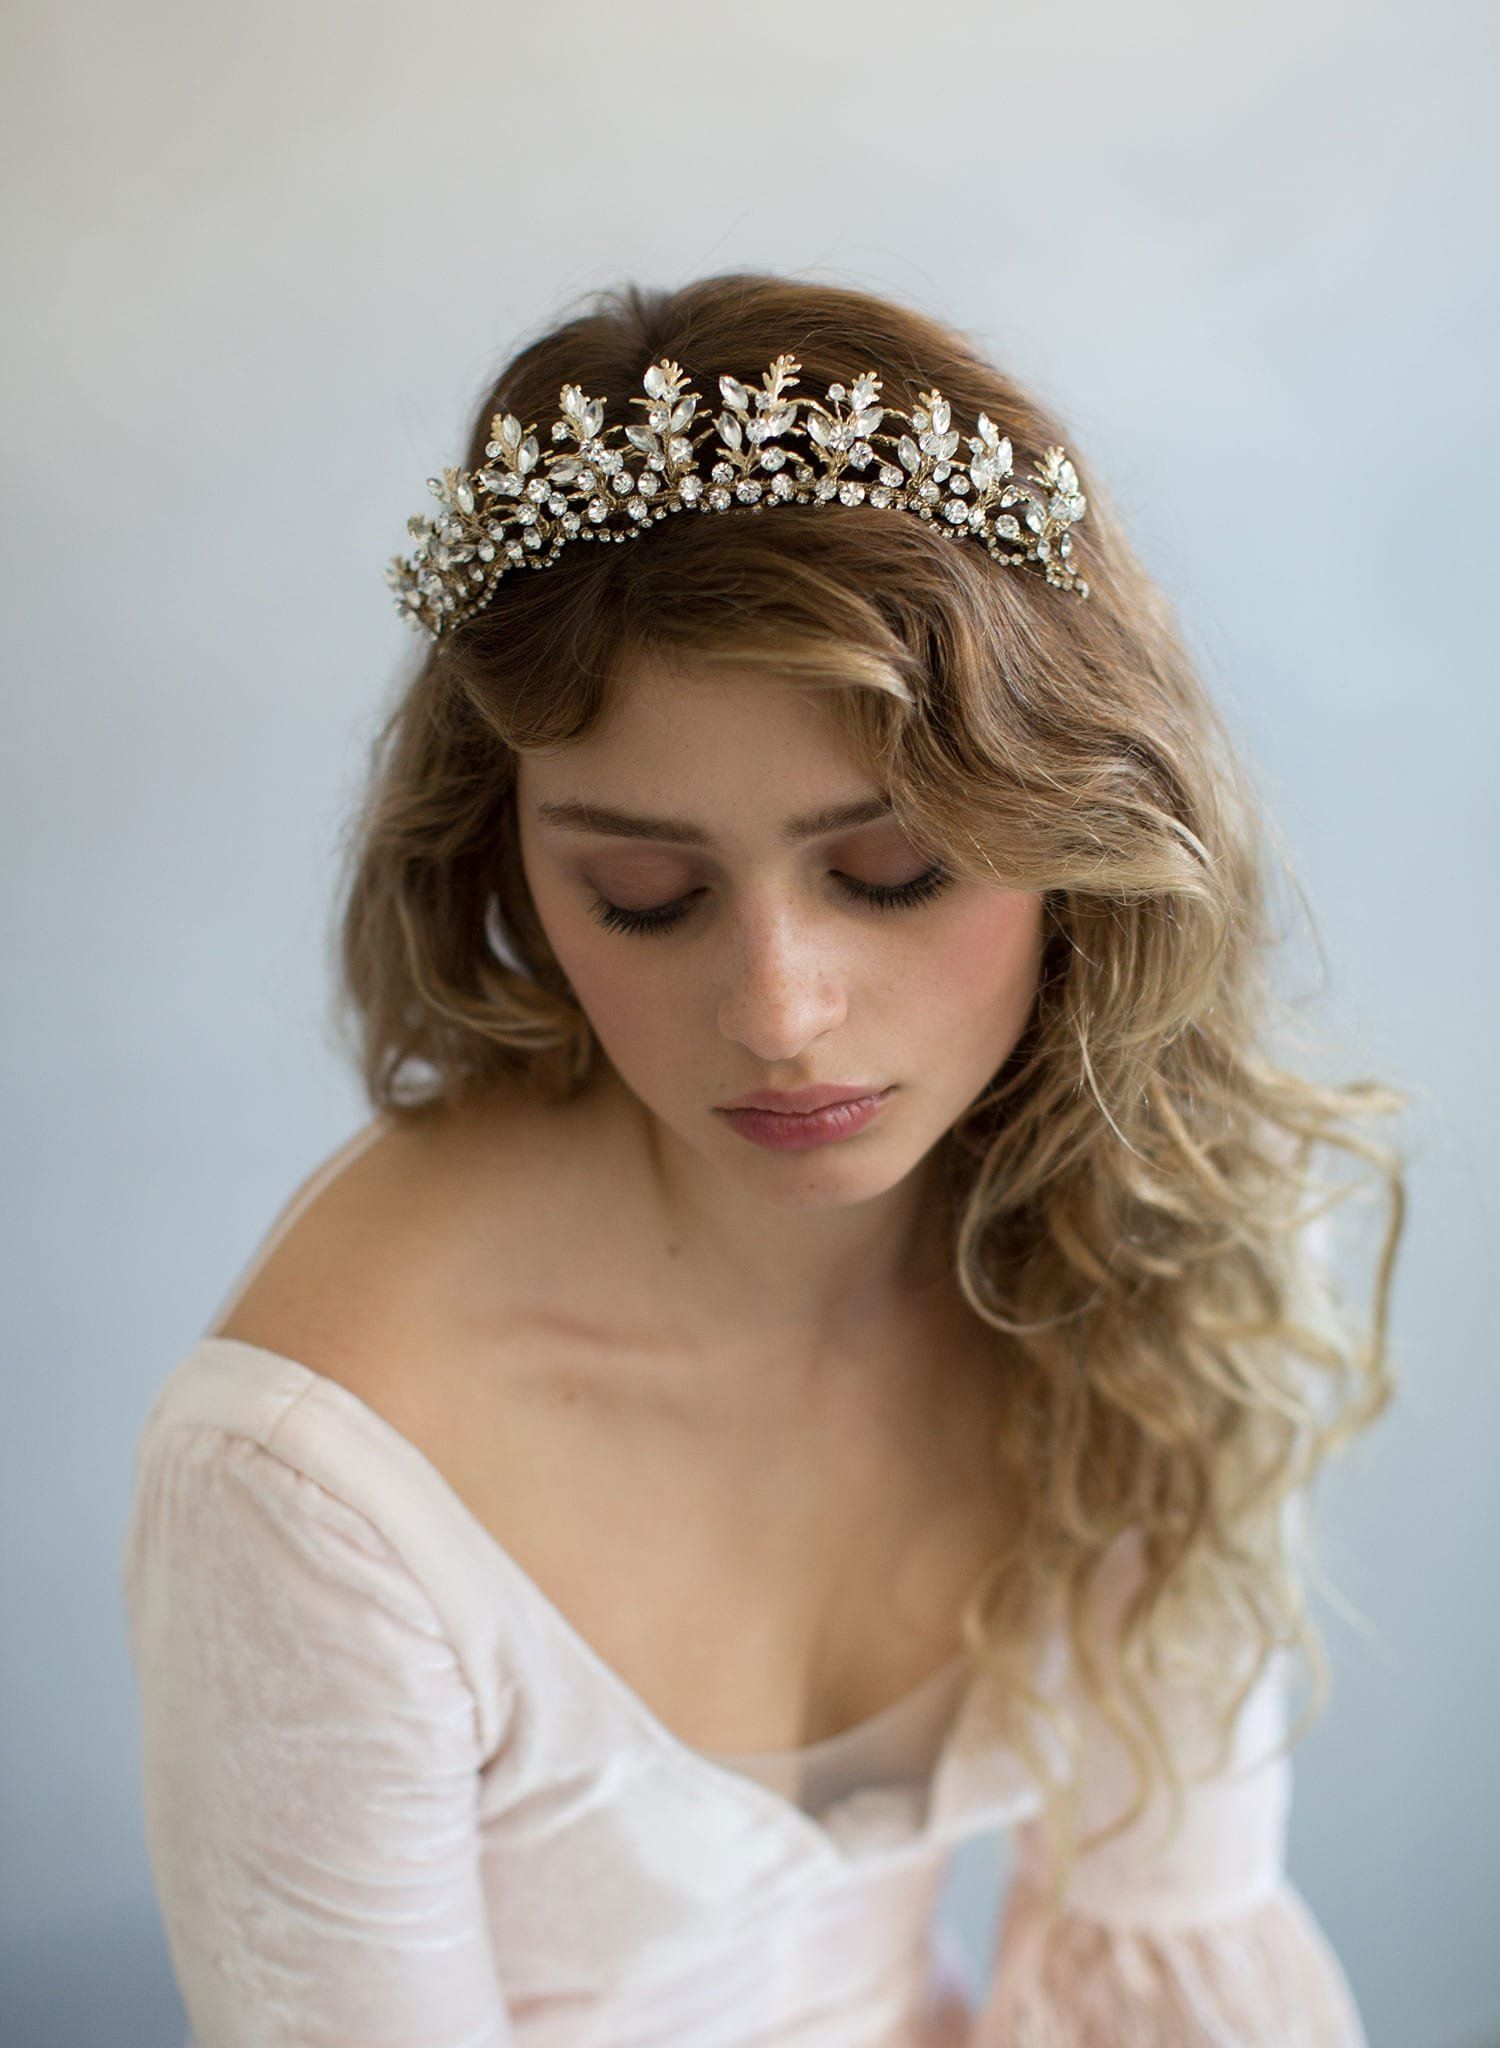 Bridal & Wedding Party Jewelry Diamante Crystal Faux Pearl Wedding Tiara Headband Crown Wreaths Elegant In Style